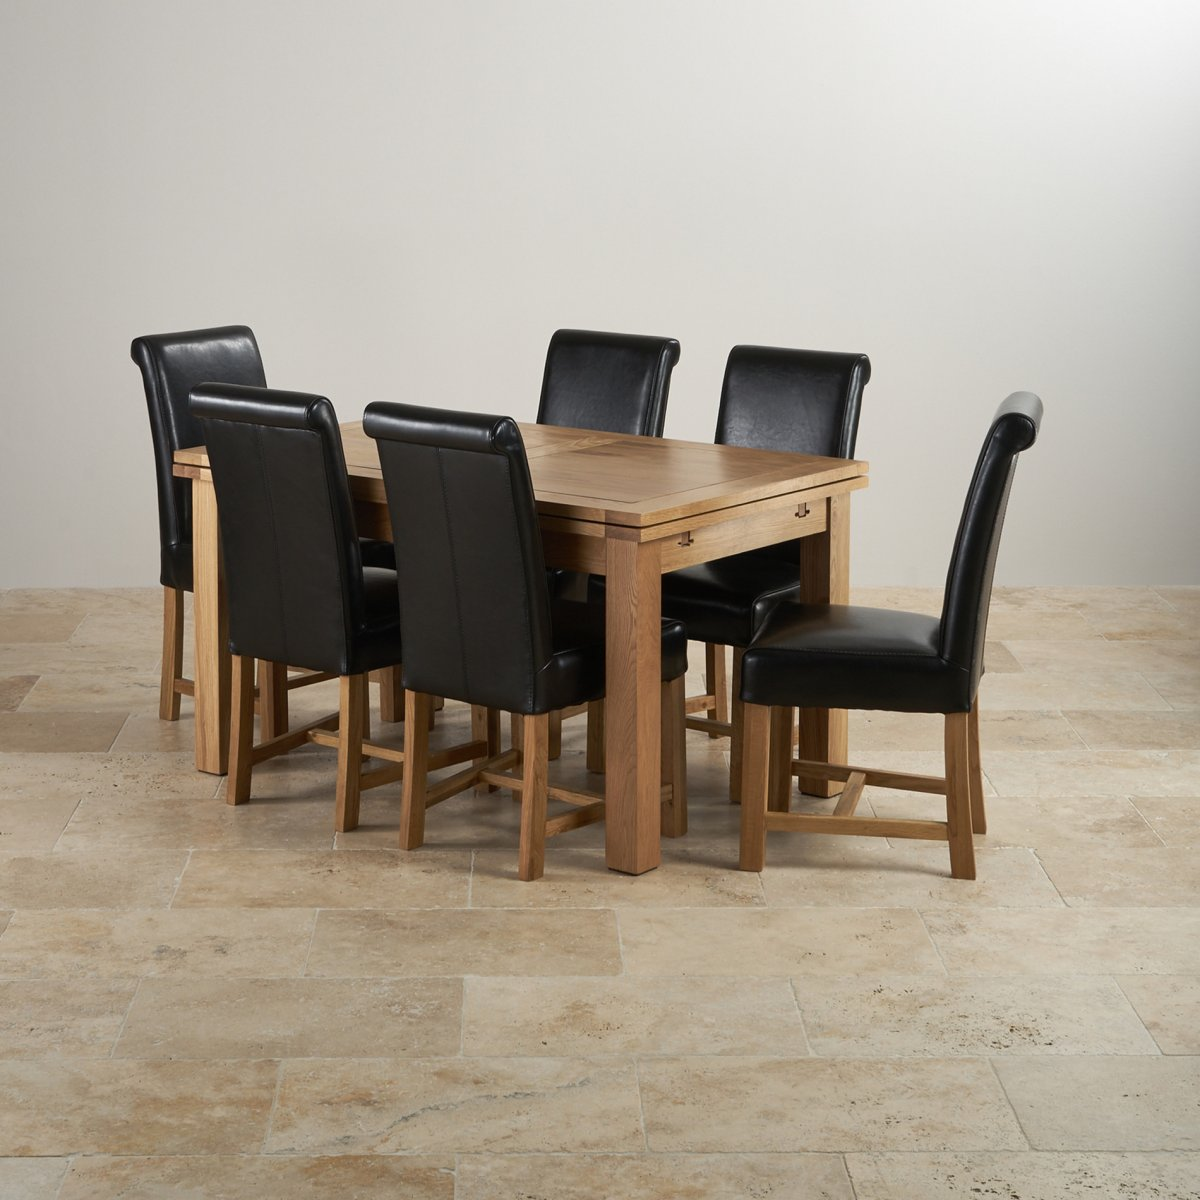 Dorset Dining Set Extending Table In Oak 6 Leather Chairs: Dorset 4ft 7 Extending Oak Dining Table + 6 Cream Leather